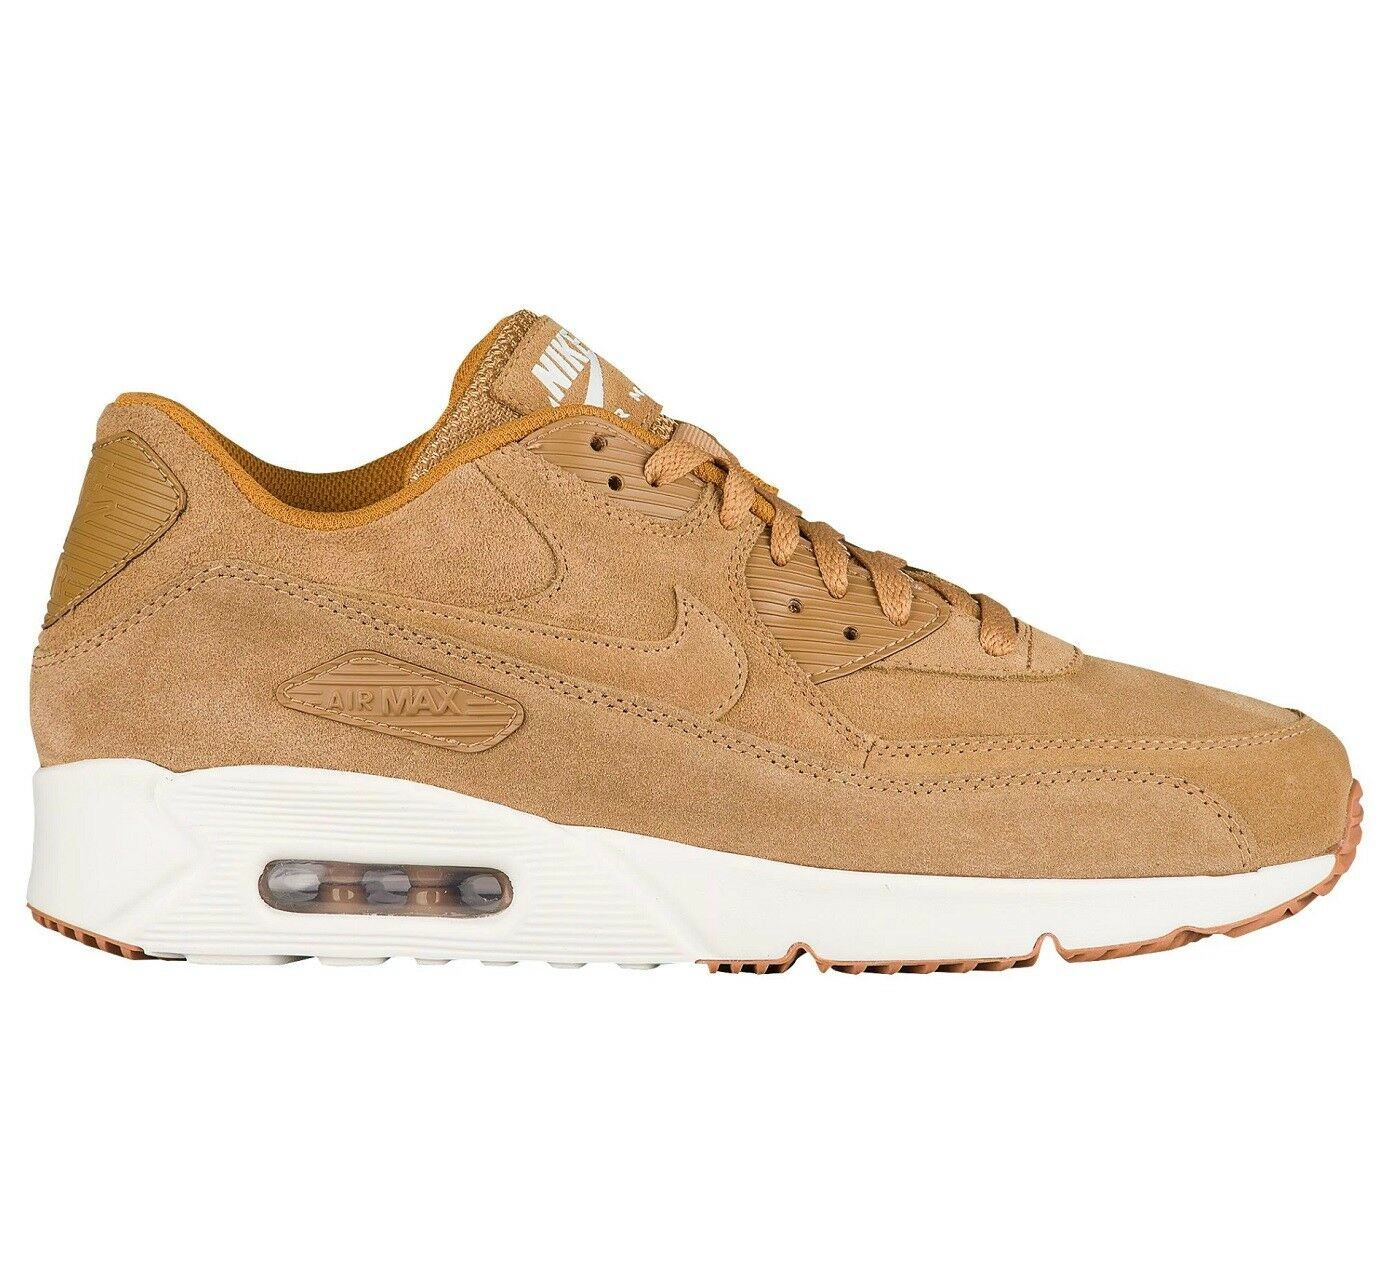 Nike Air Max 90 Ultra 2.0 Mens 824447-200 Flax Gum Brown Running Shoes Size 8